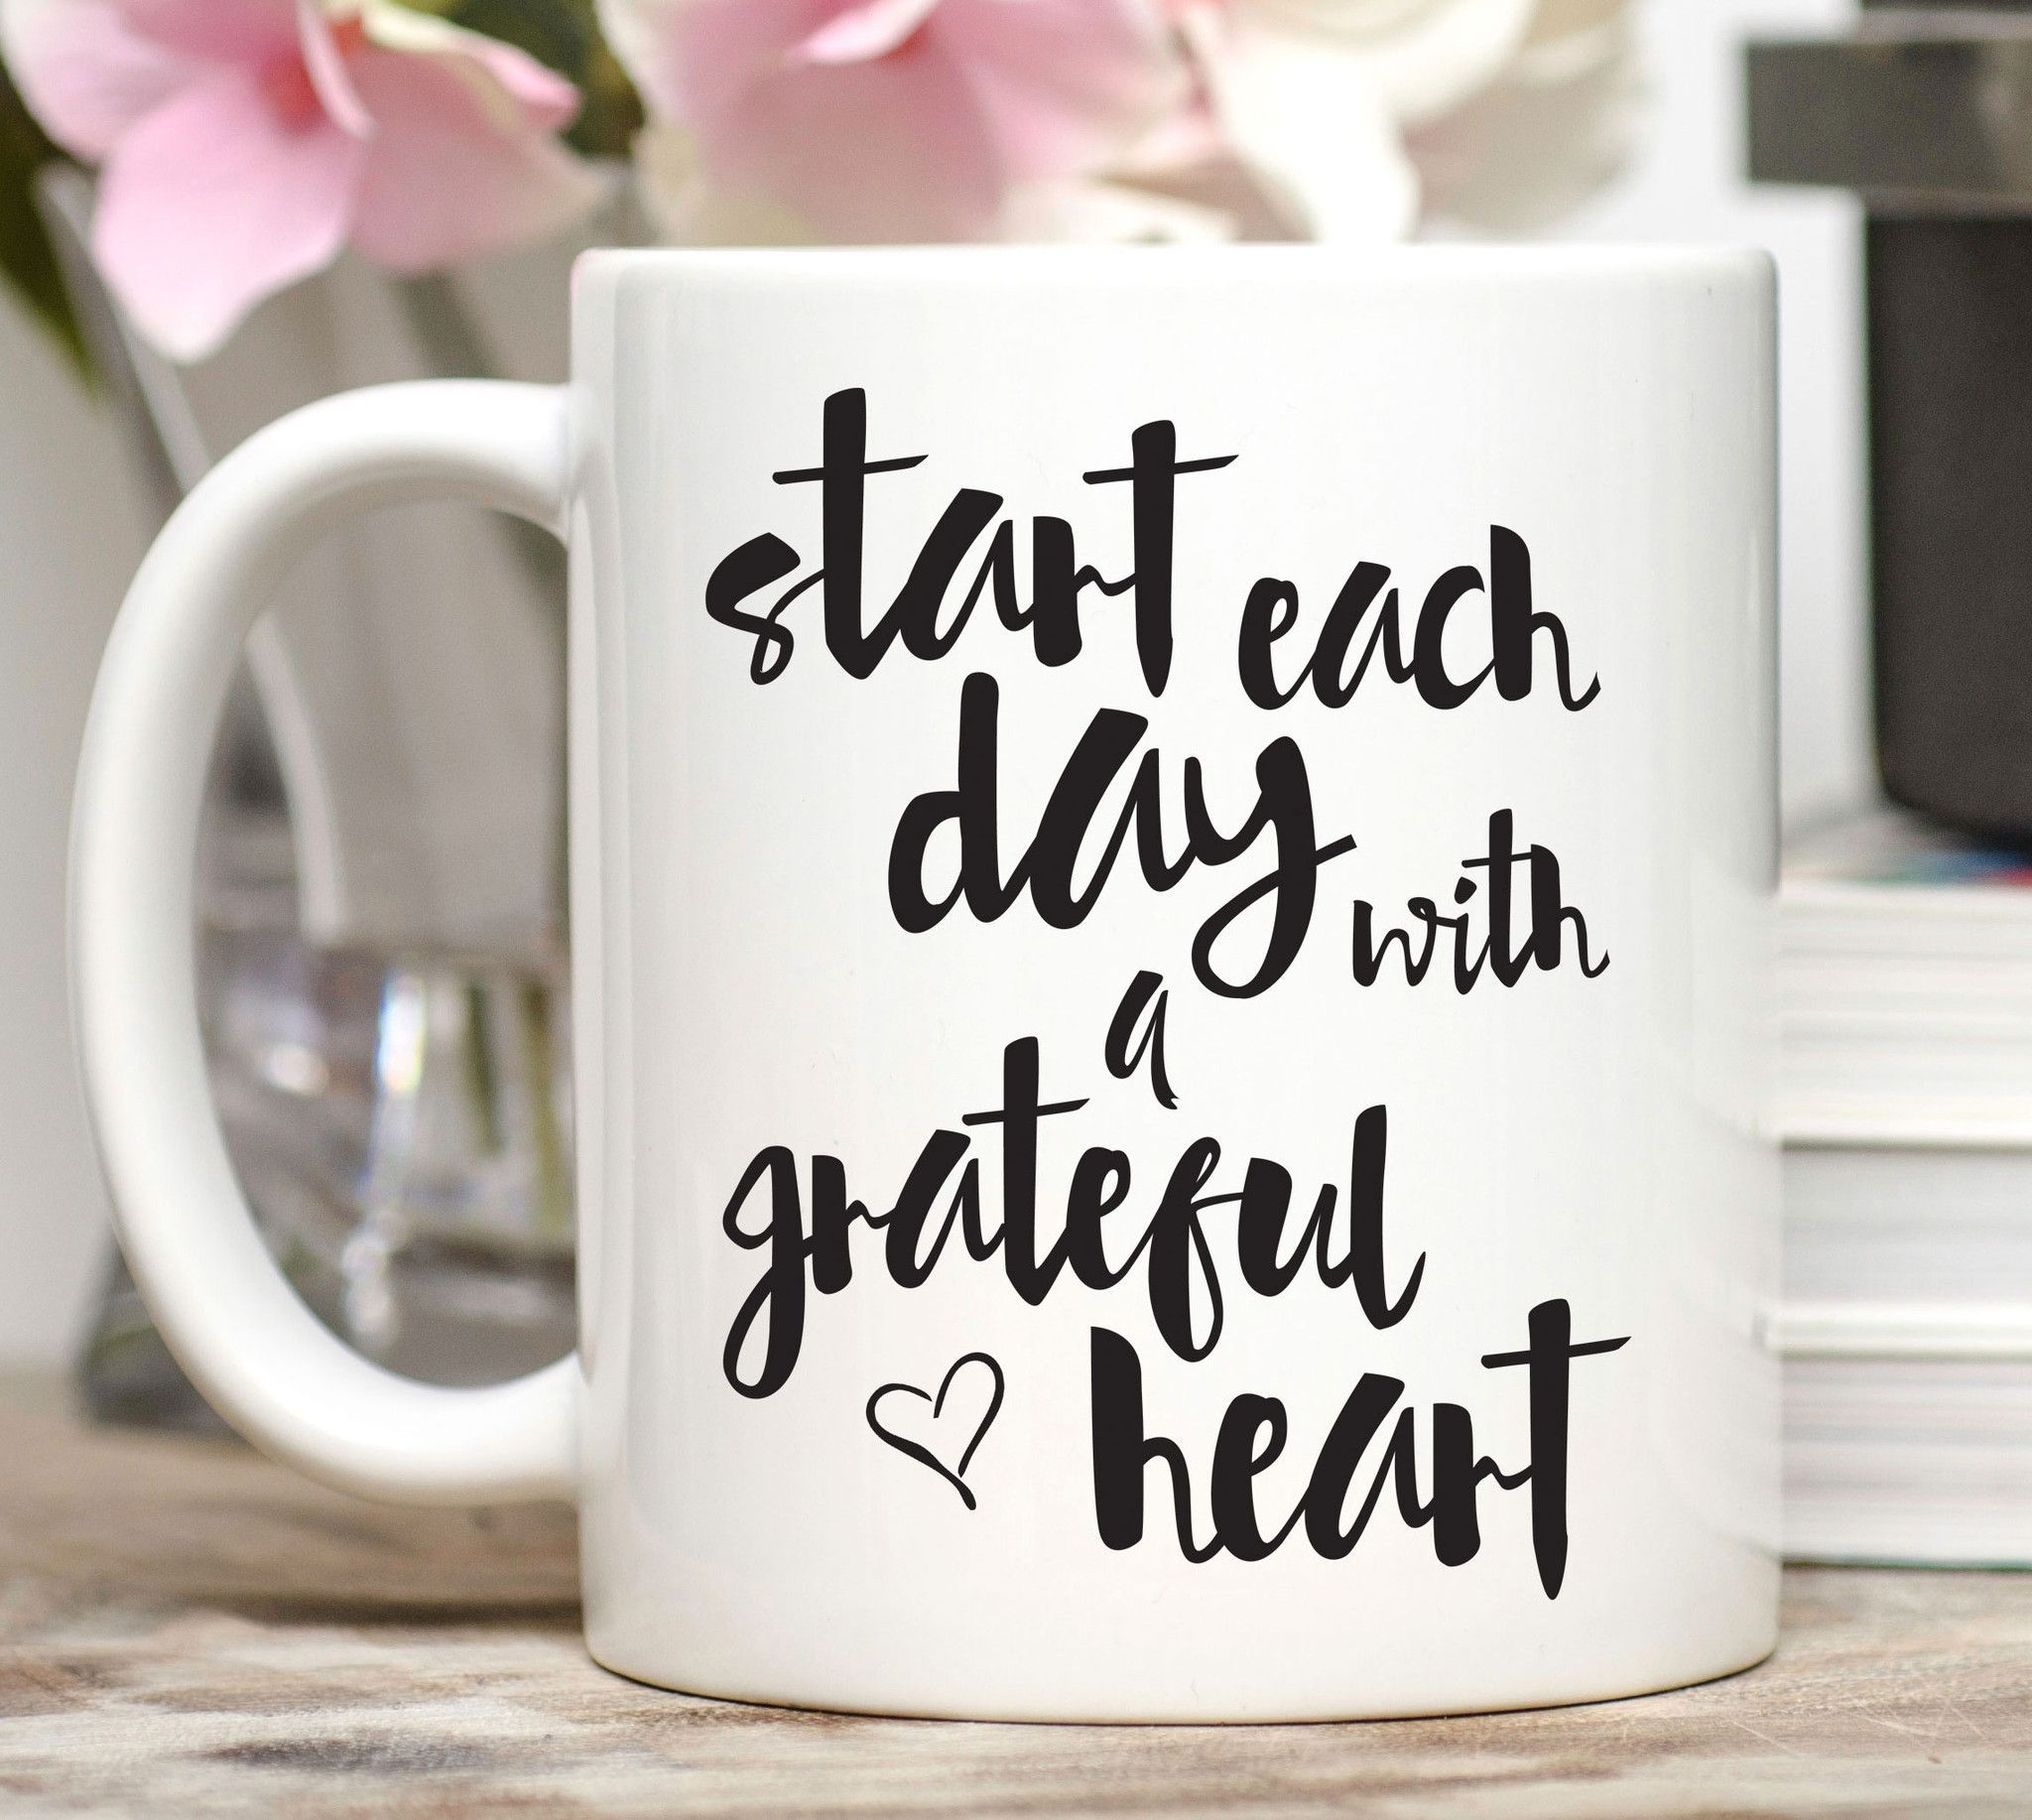 Start each day with a grateful heart. Science now shows that cultivating gratitude can improve your relationships, your health and even your quality of sleep! This mug will remind you to get in the mi